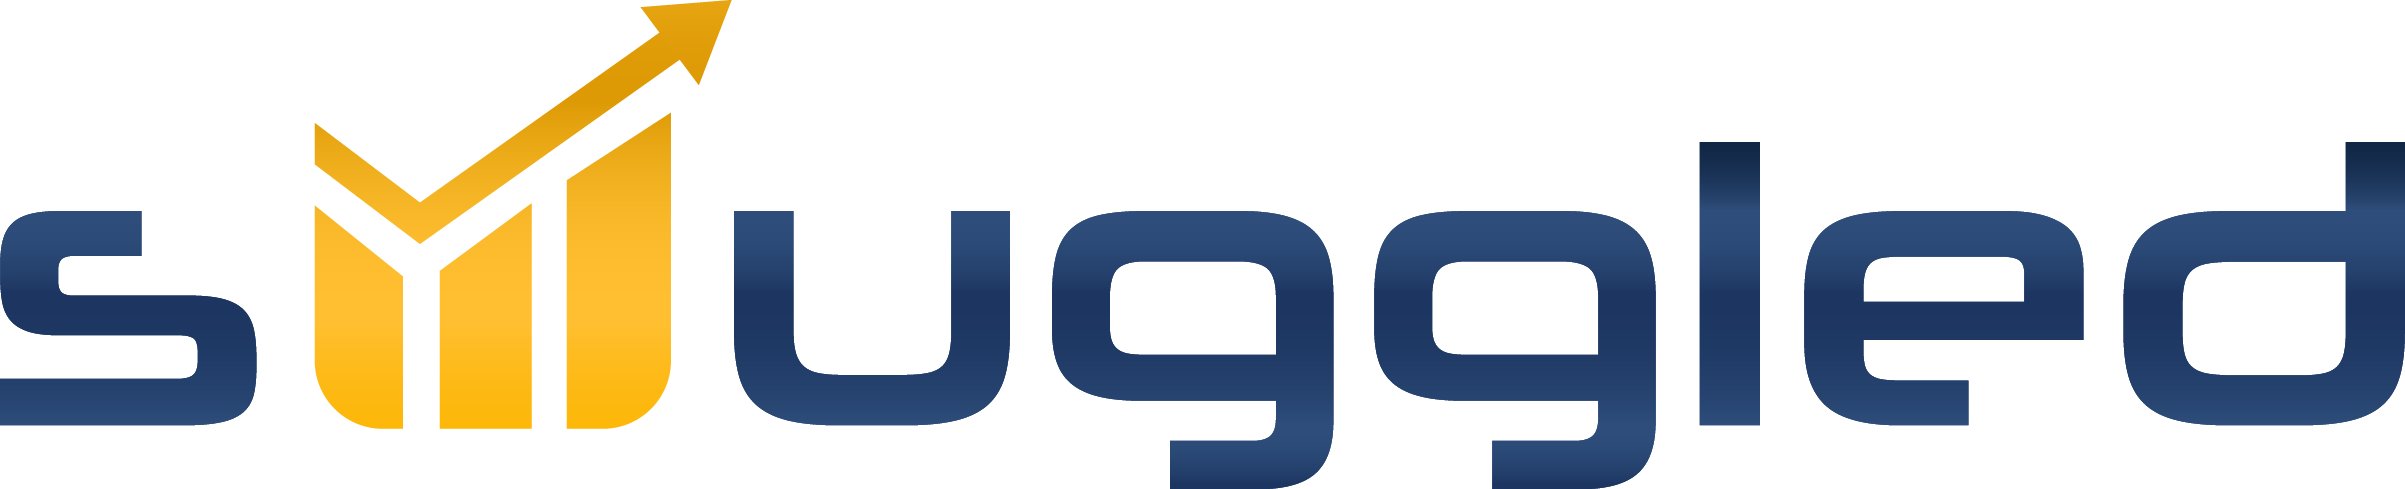 SMUGGLED - Agencja e-marketingu